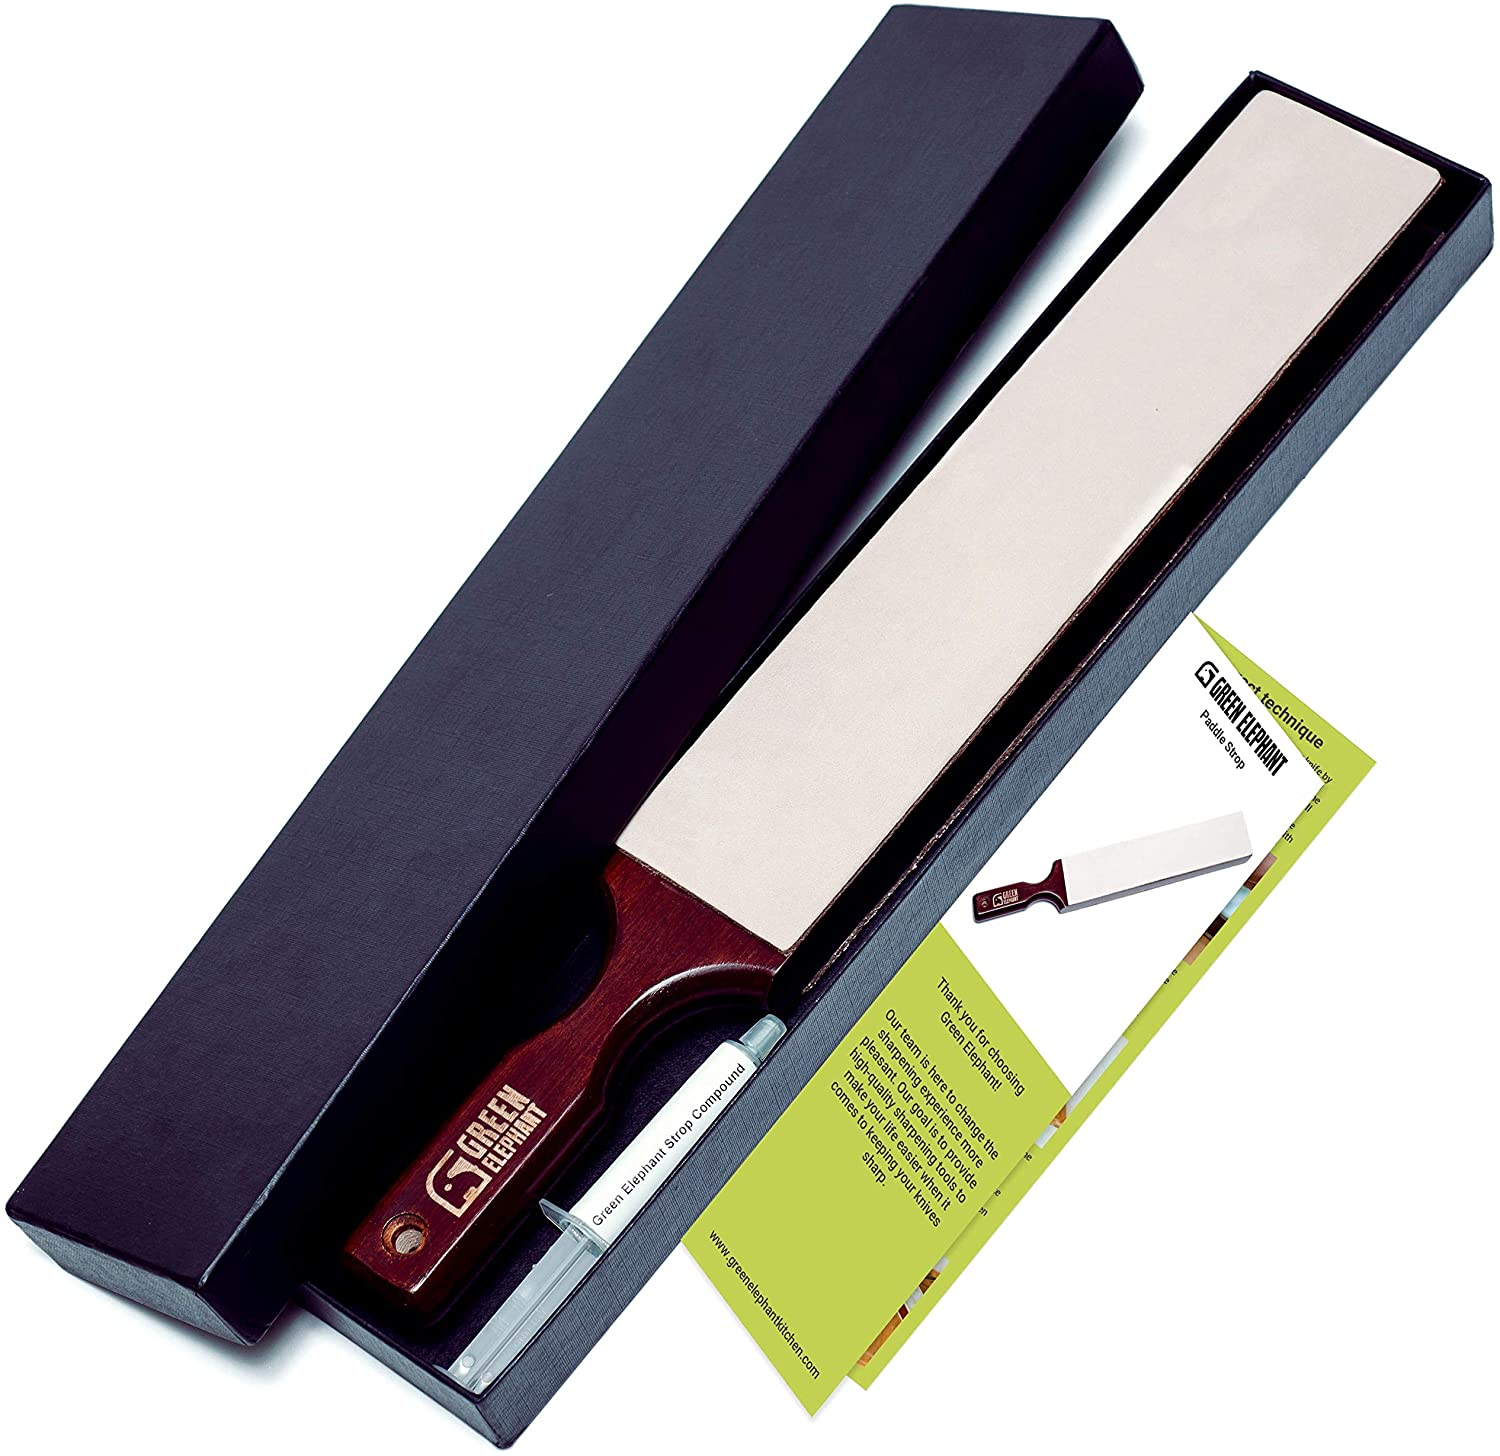 Leather Strop With Stropping Compound - Large 2 Sided Knife Strop With Natural Rough And Smooth Stropping Leather by Green Elephant